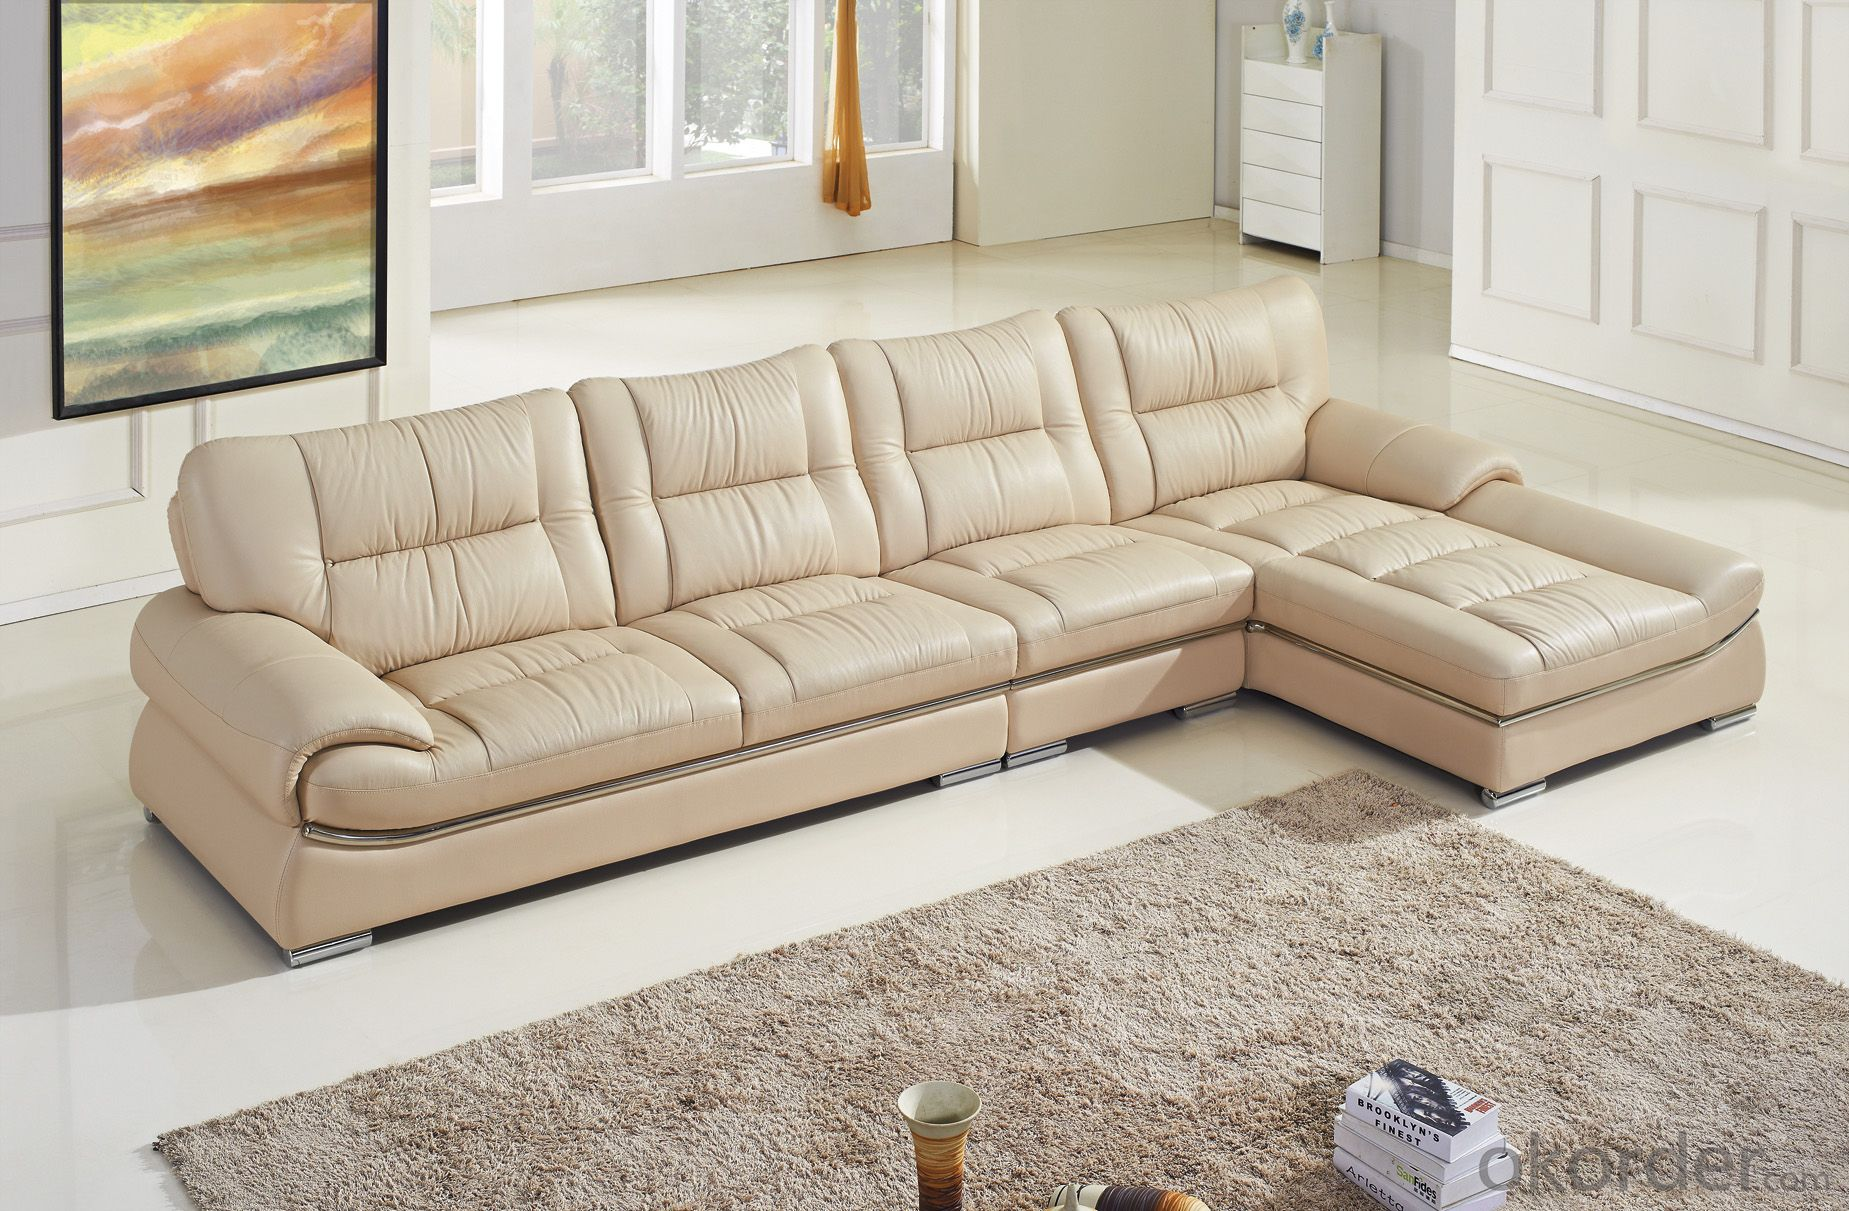 CNBM US popular leather sofa set CMAX-11